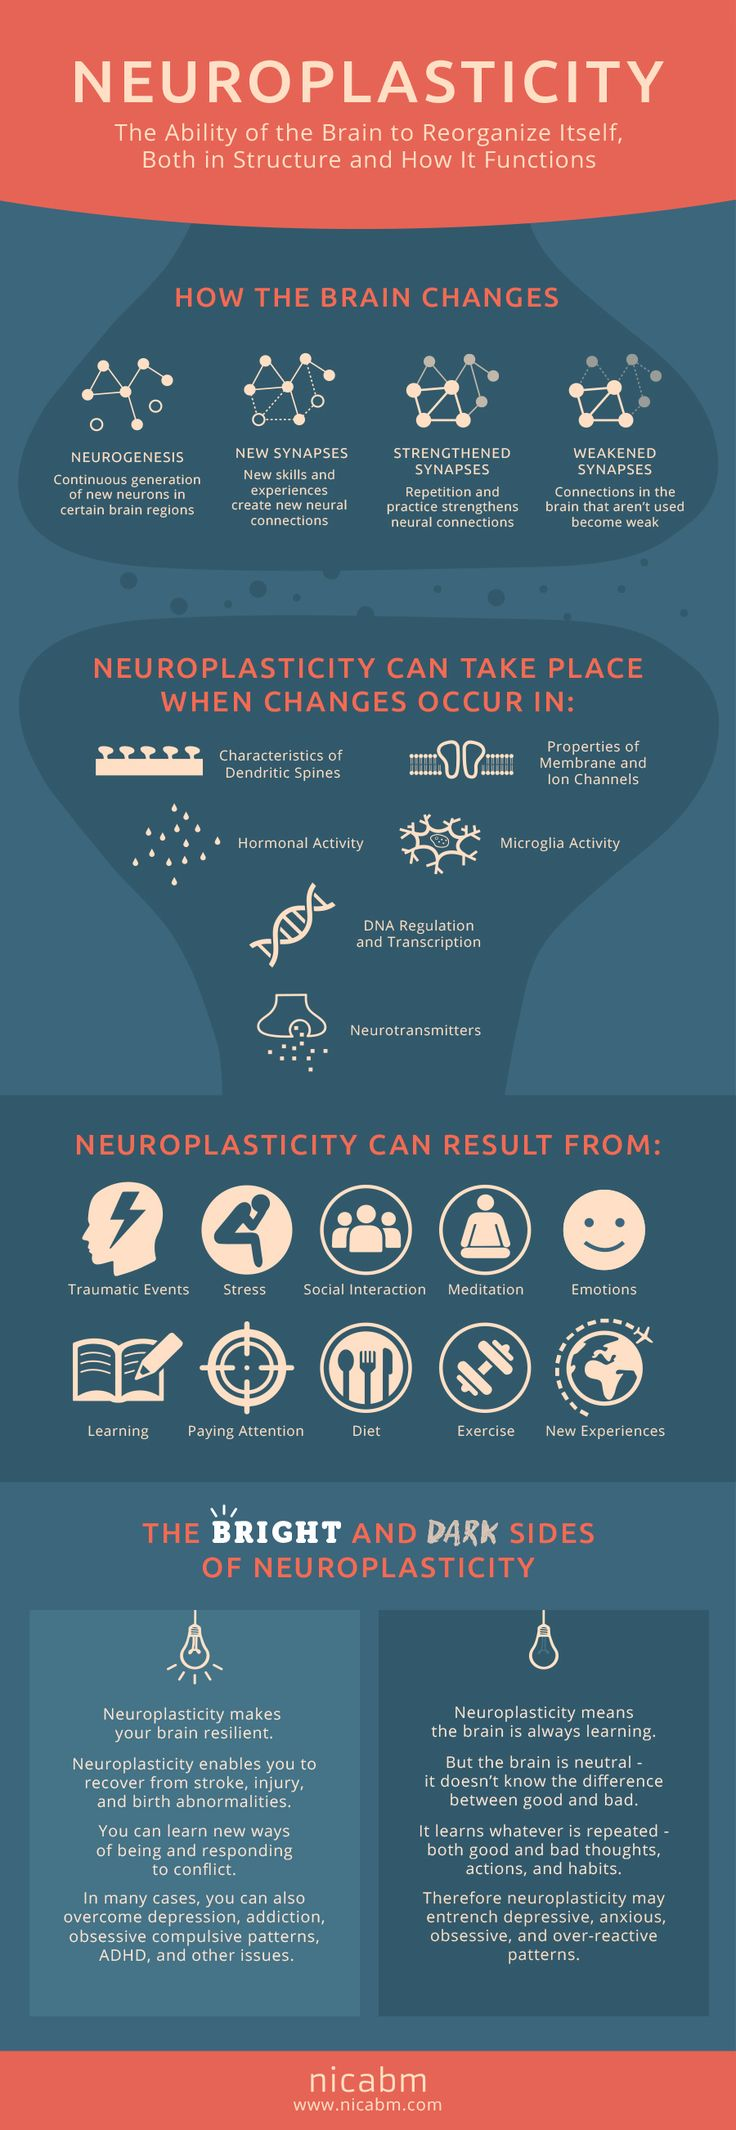 Understanding Neuroplasticity and why it gives hope to everyone. Where ever you are now in your life, you have the power to think & behave differently.